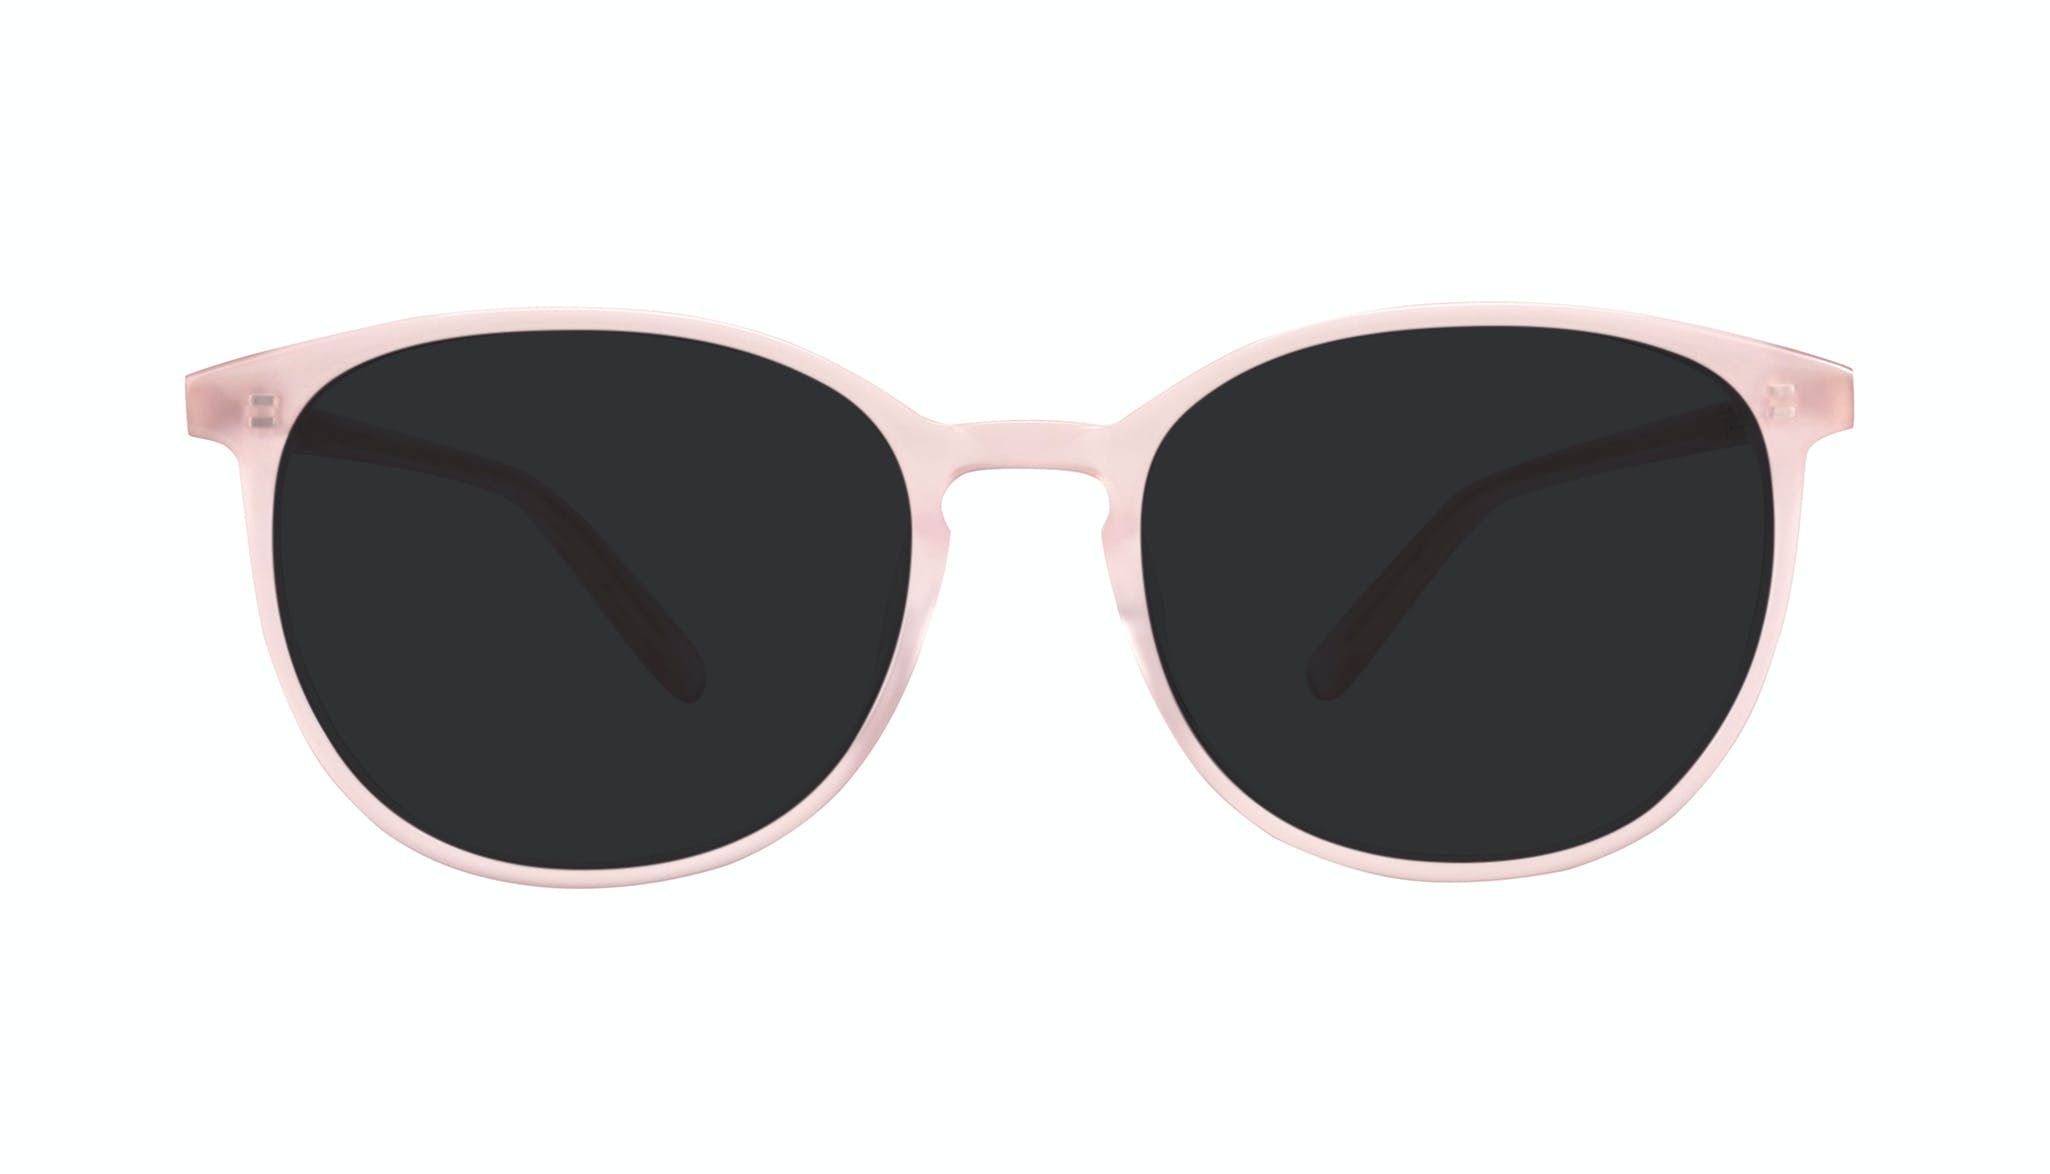 Affordable Fashion Glasses Round Sunglasses Women Femme Libre Mila